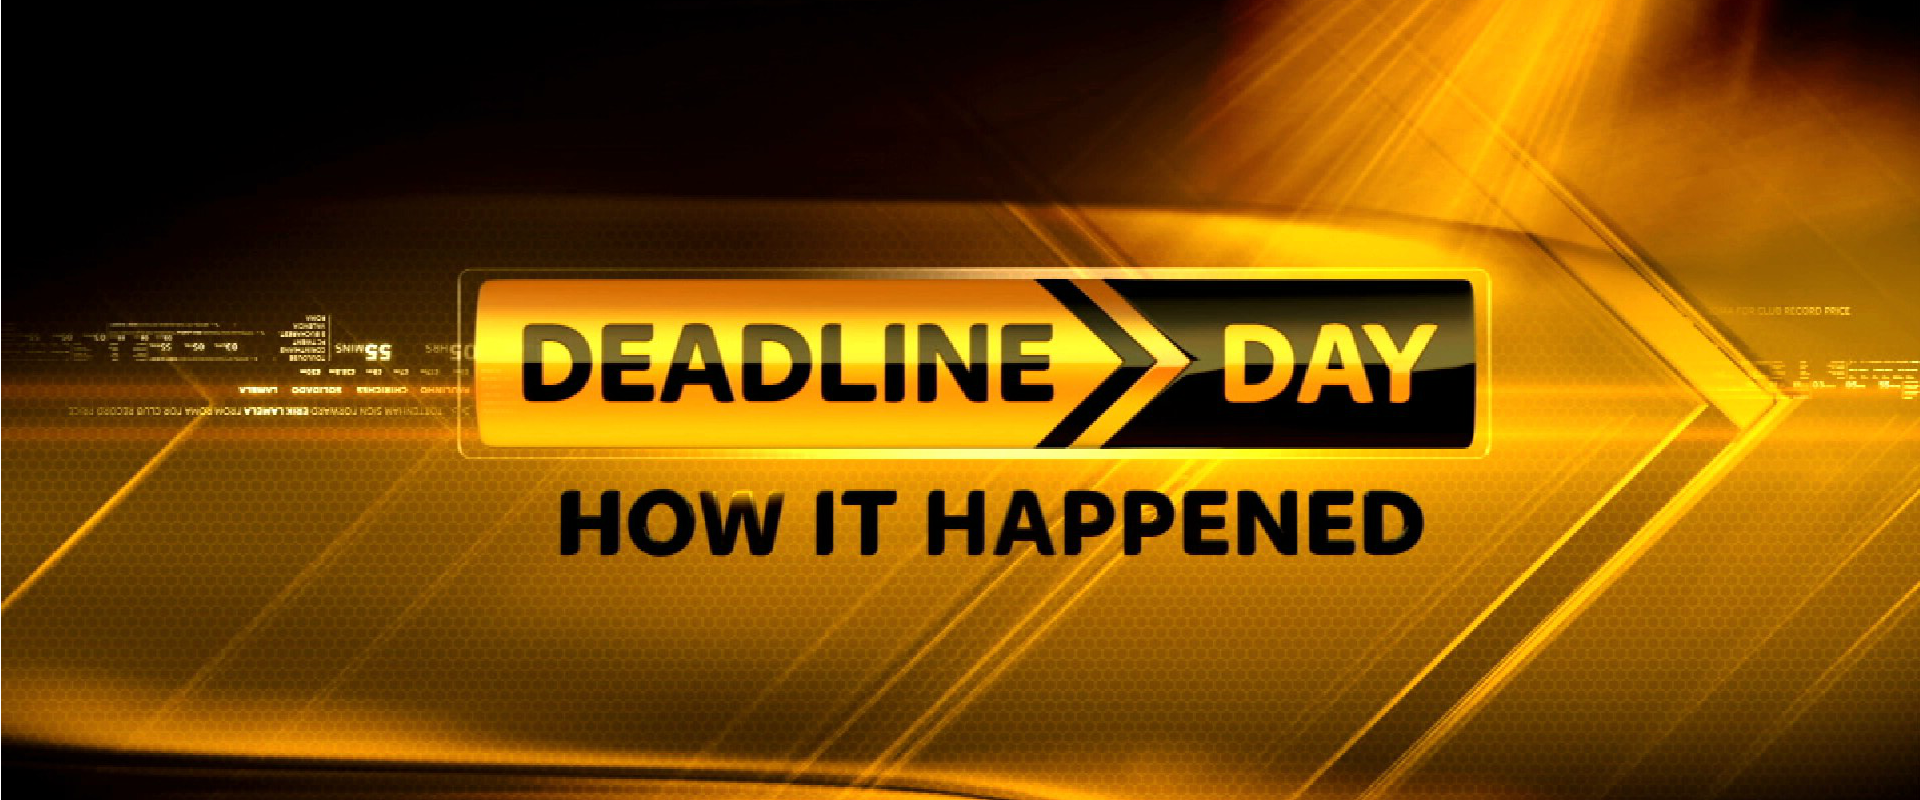 deadline-day-header-rev